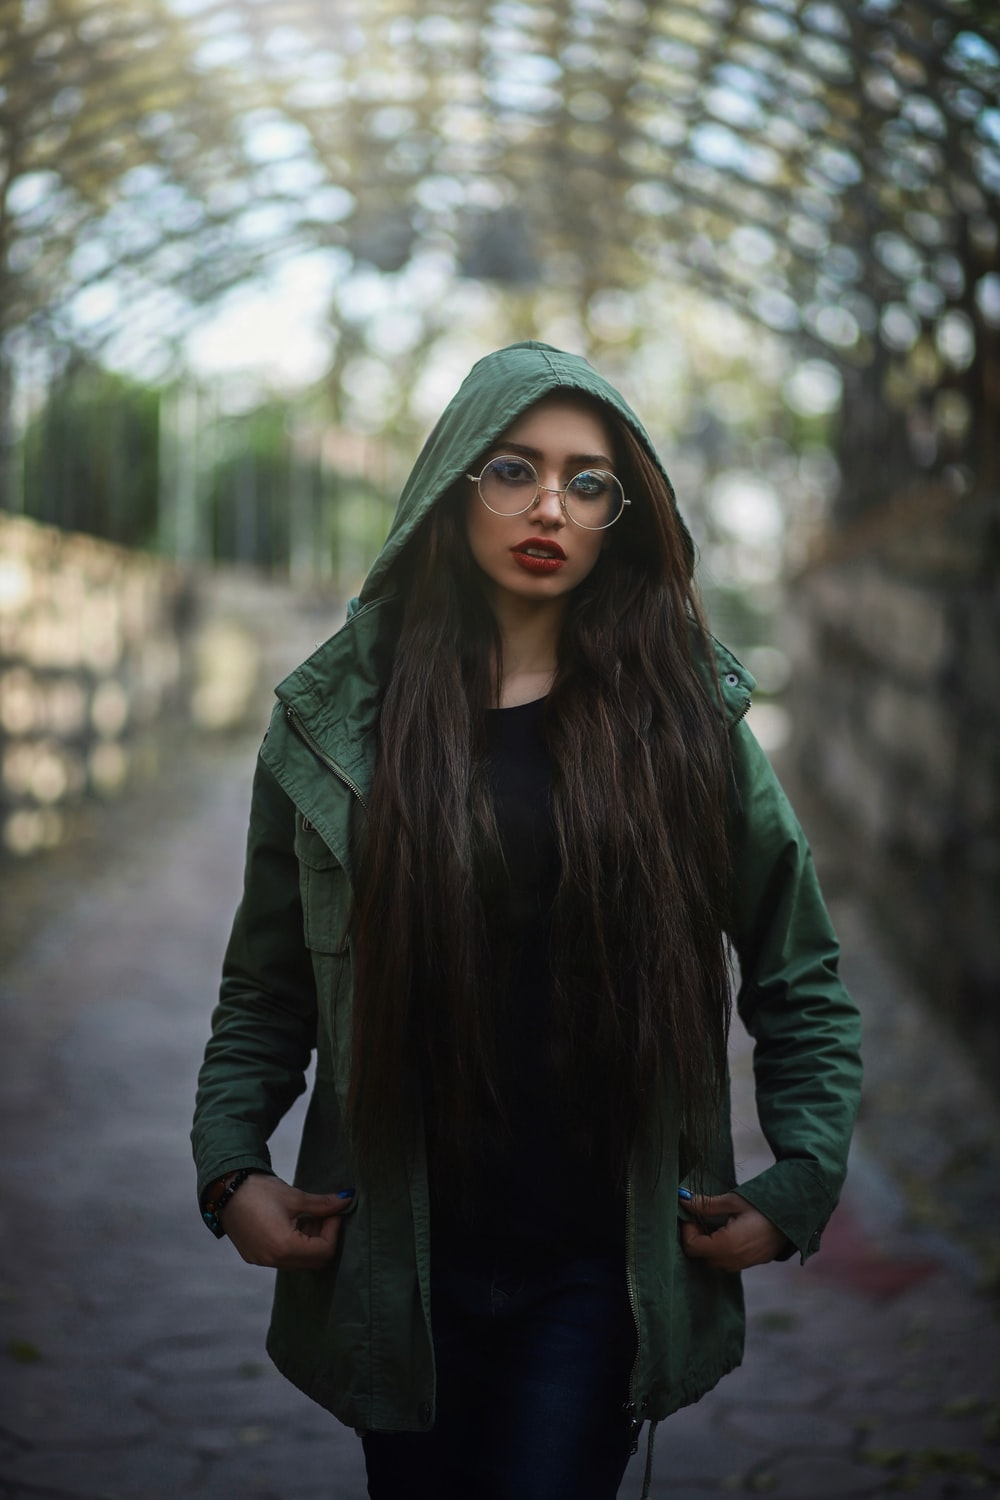 woman with a hooded jacket